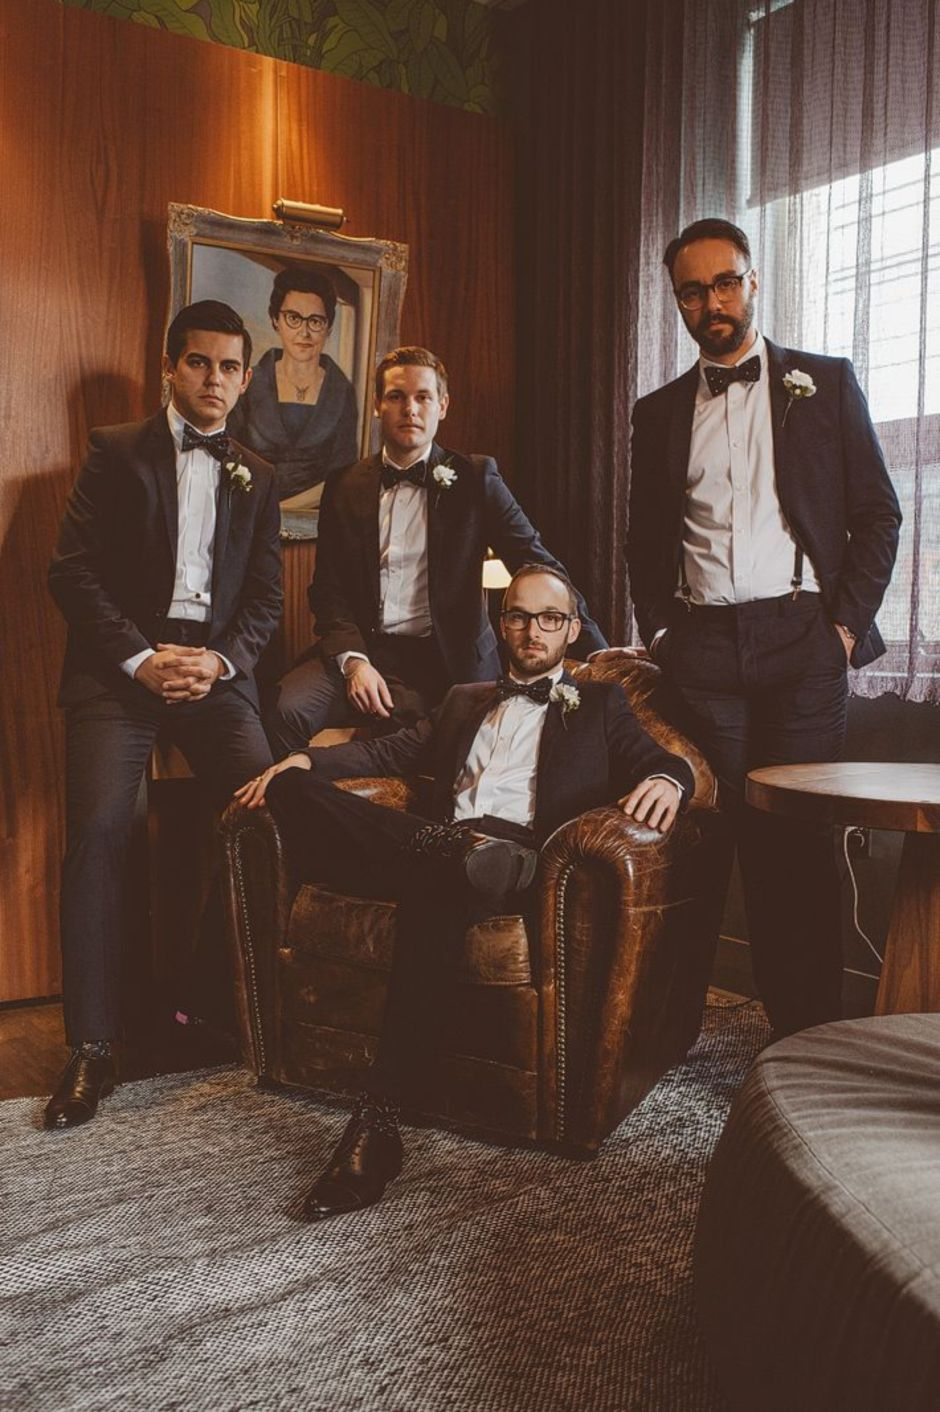 100+ Groomsmen Photos Poses Ideas You Can't Miss 109